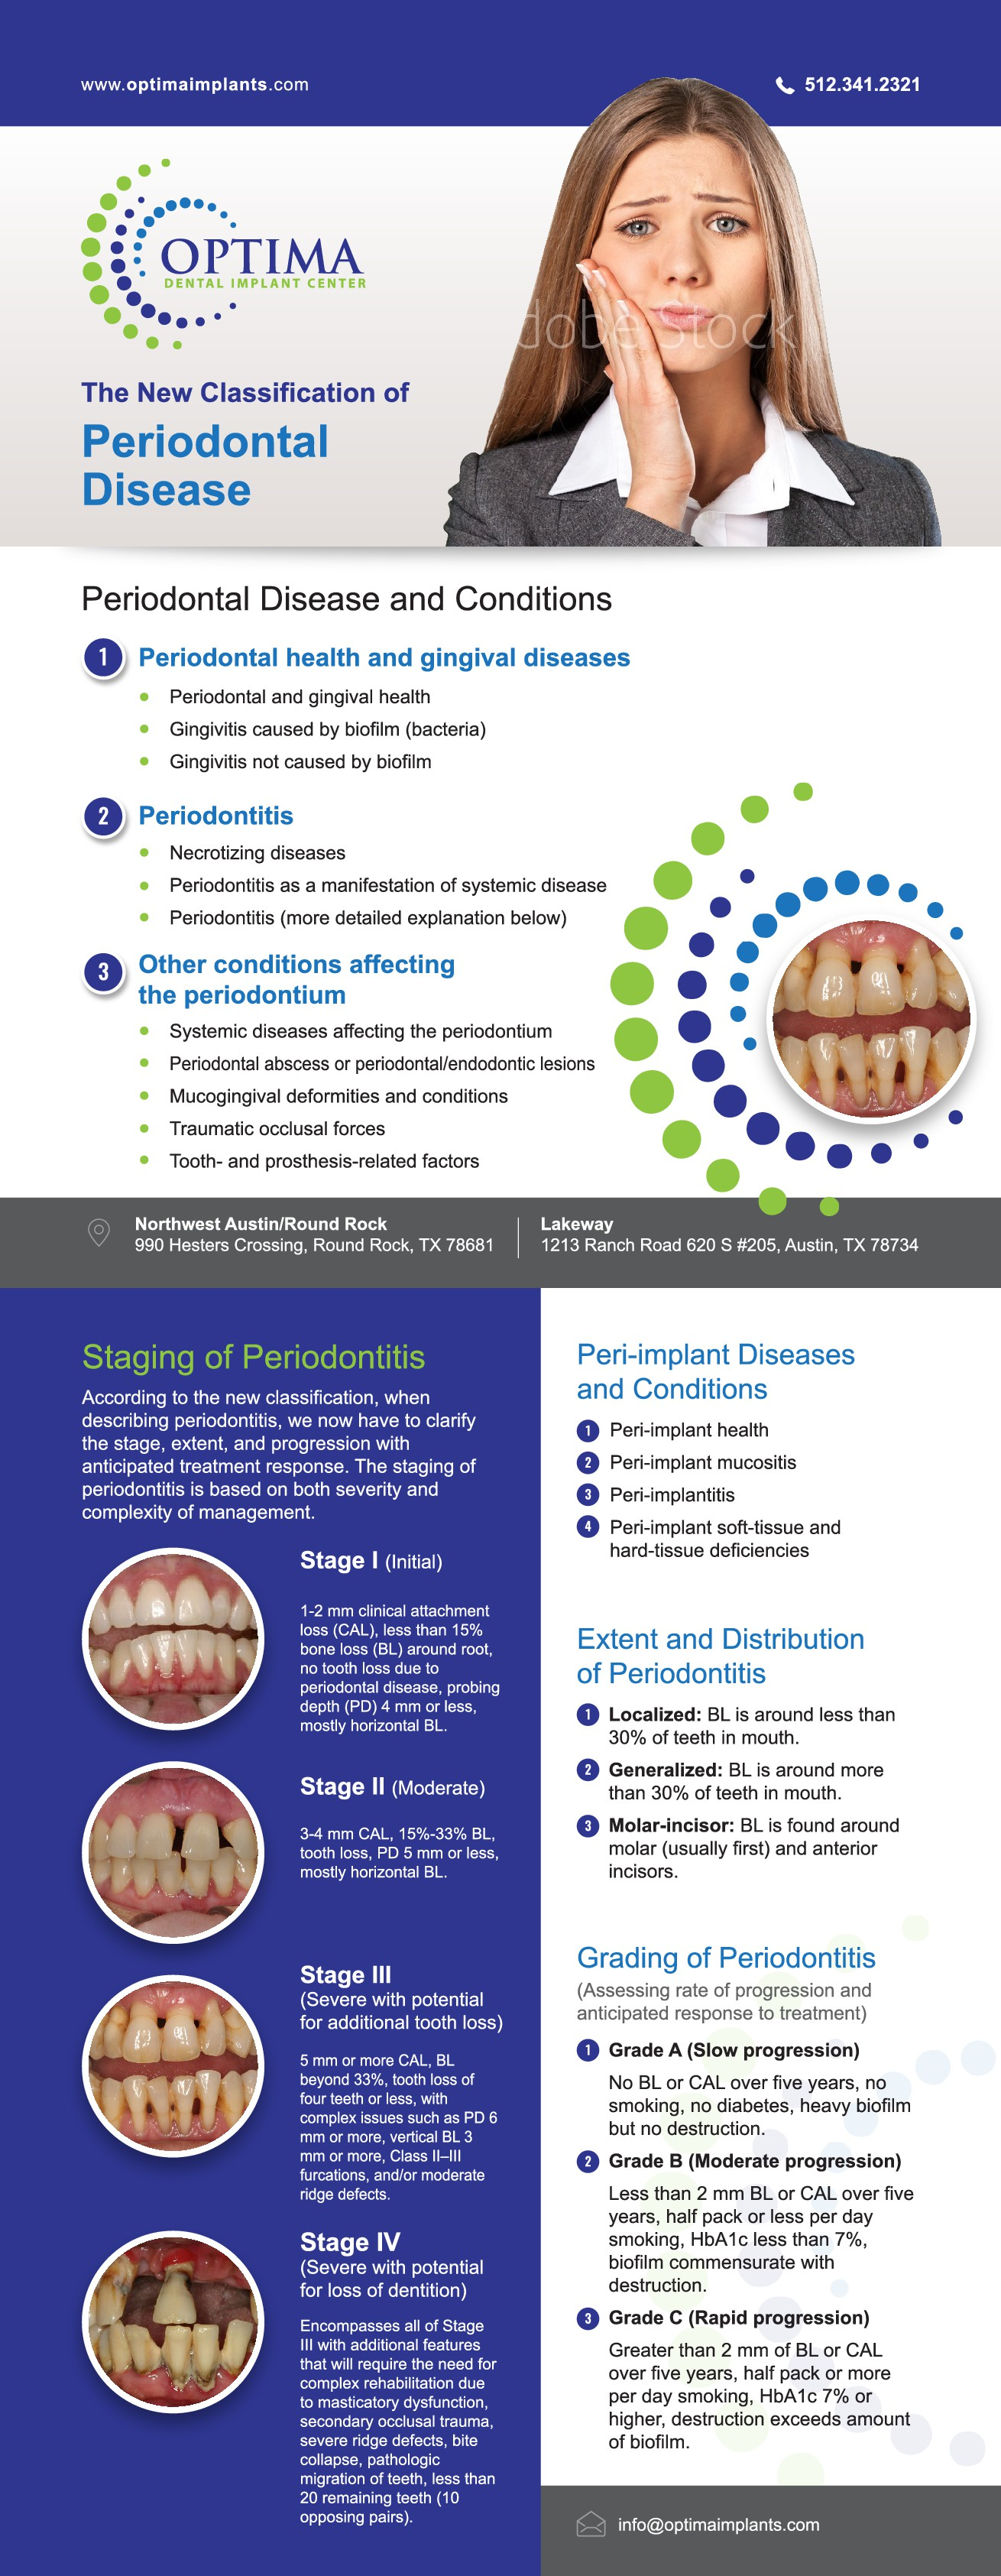 Create a modern brochure for the new classification of periodontal disease